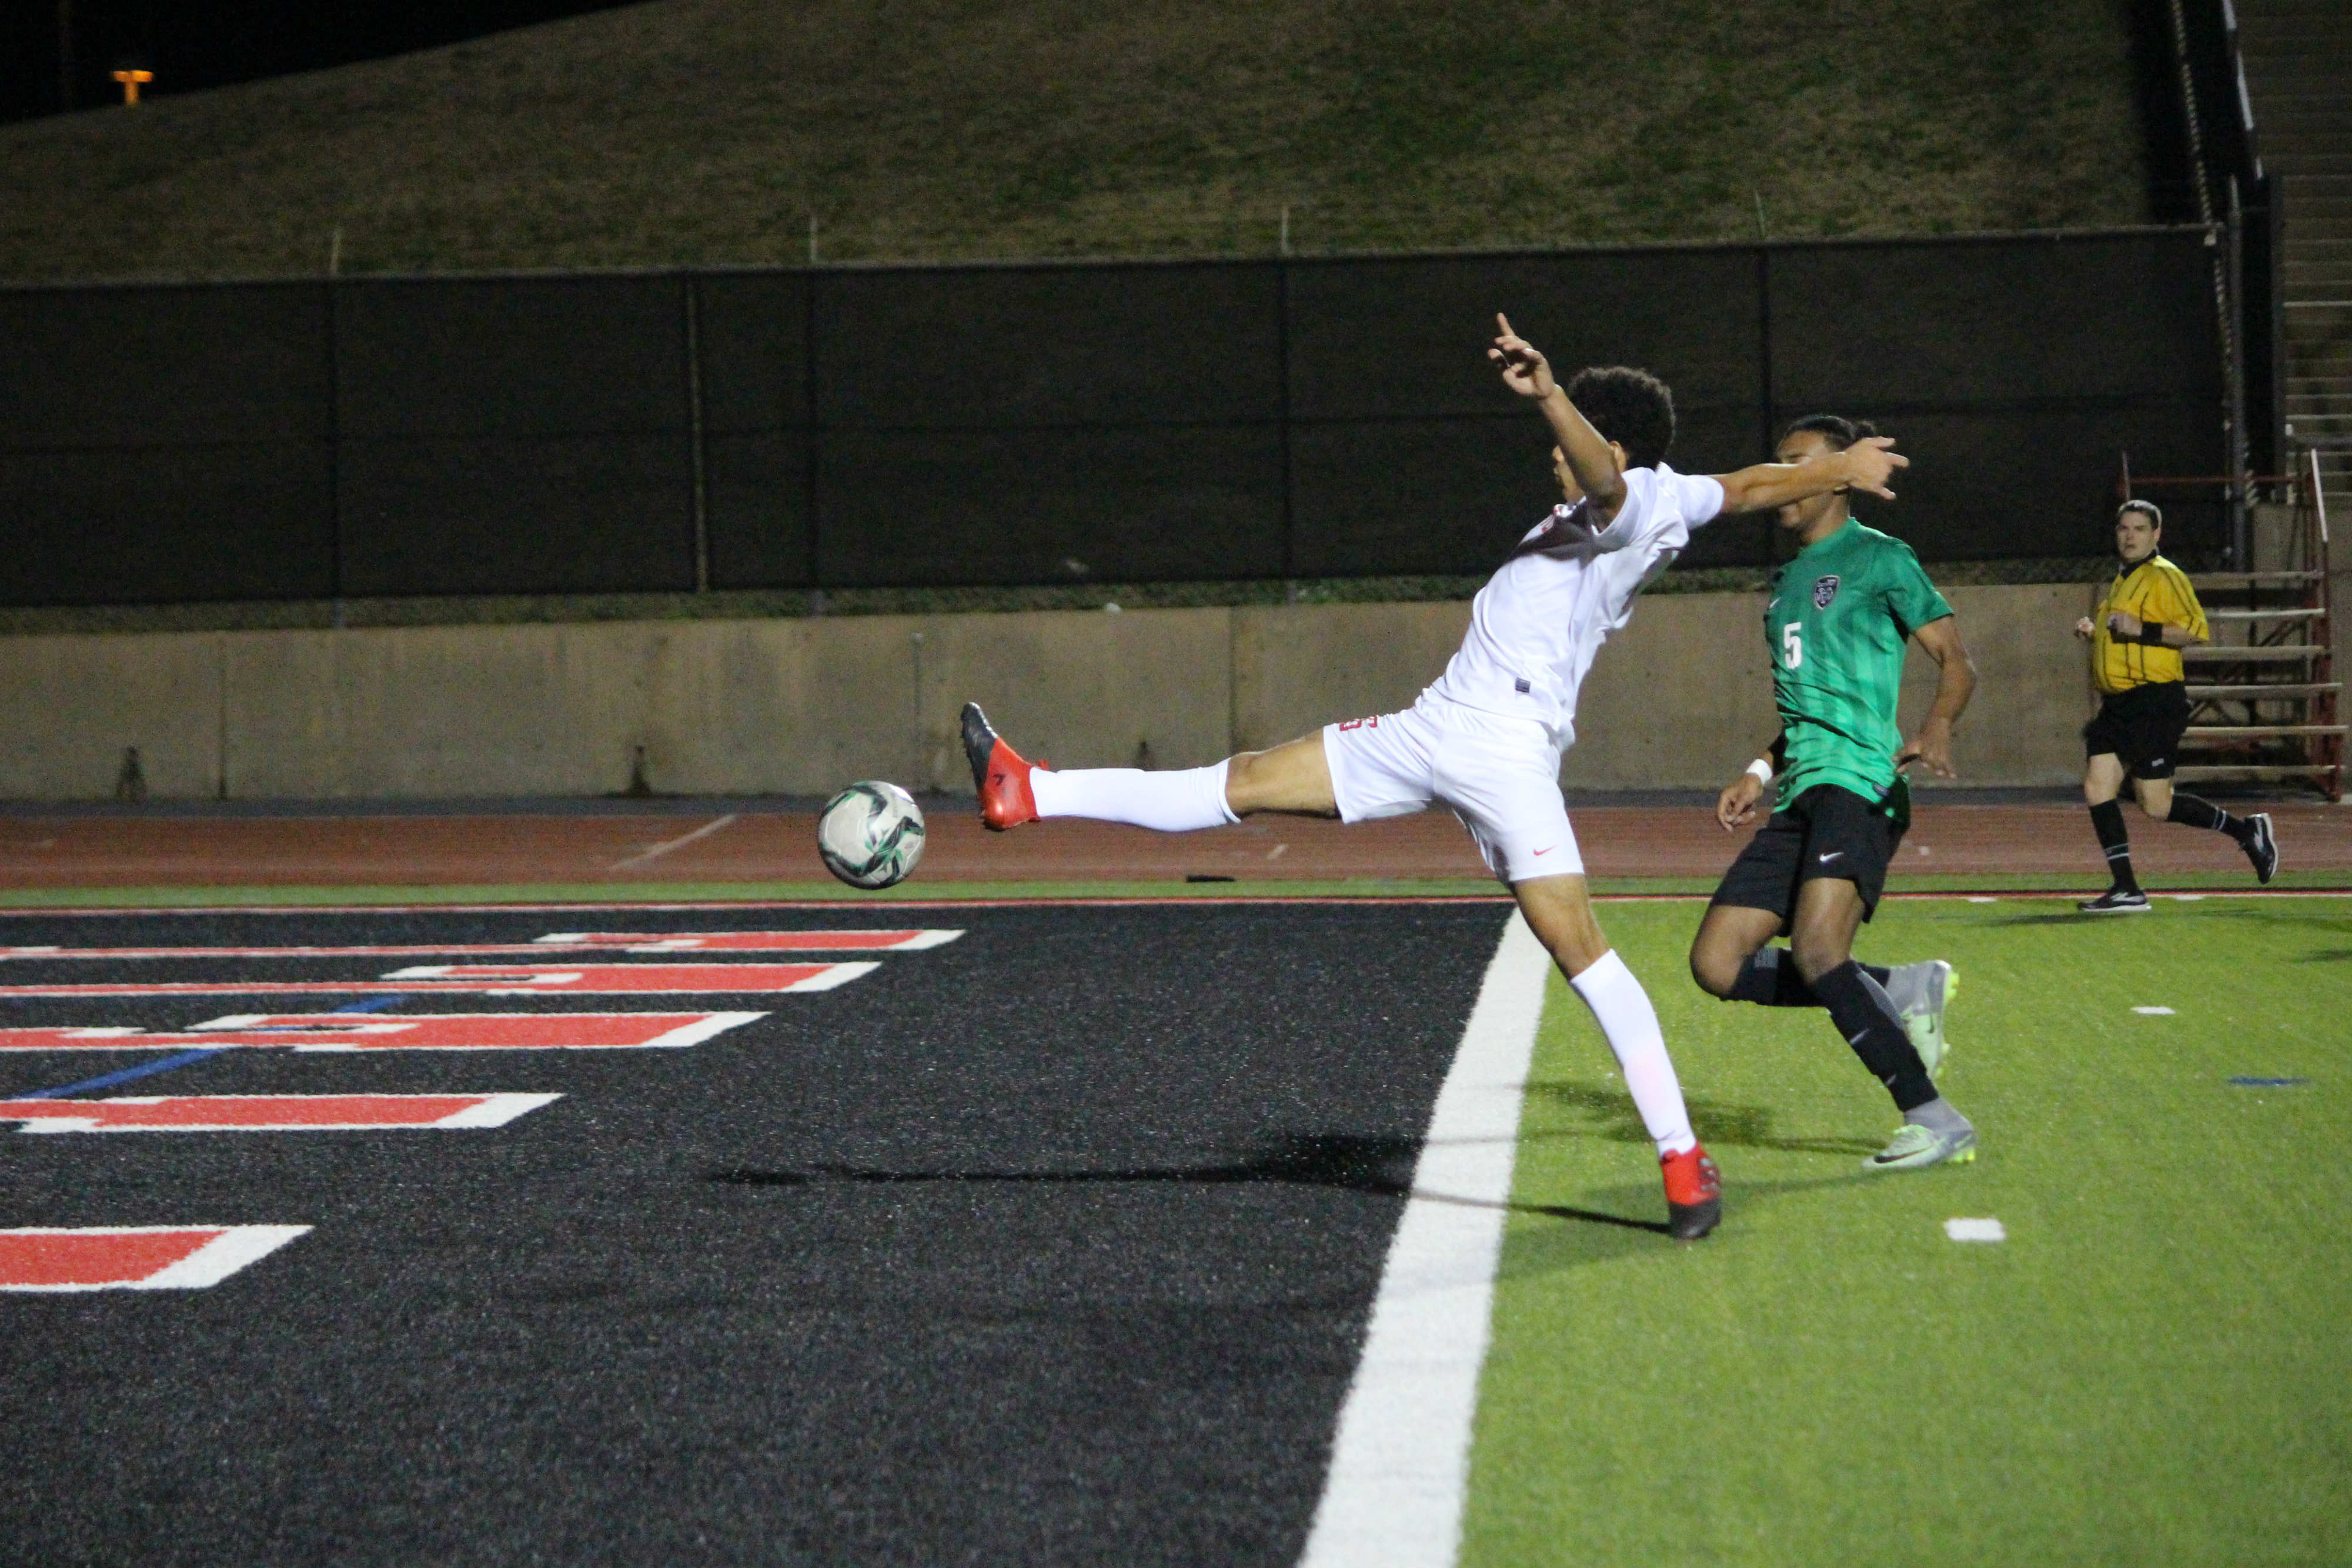 Coppell High School junior forwards Francisco Redondo tries to control a cross during the first half of Tuesday night's match at Buddy Echols Field against the Richardson Berkner High School Rams. The Cowboys defeated the Rams 4-0 with goals from senior captain and forward Nick Taylor, junior midfielder Bennett Hunter and senior captain and midfielder Bishesh Manandhar.